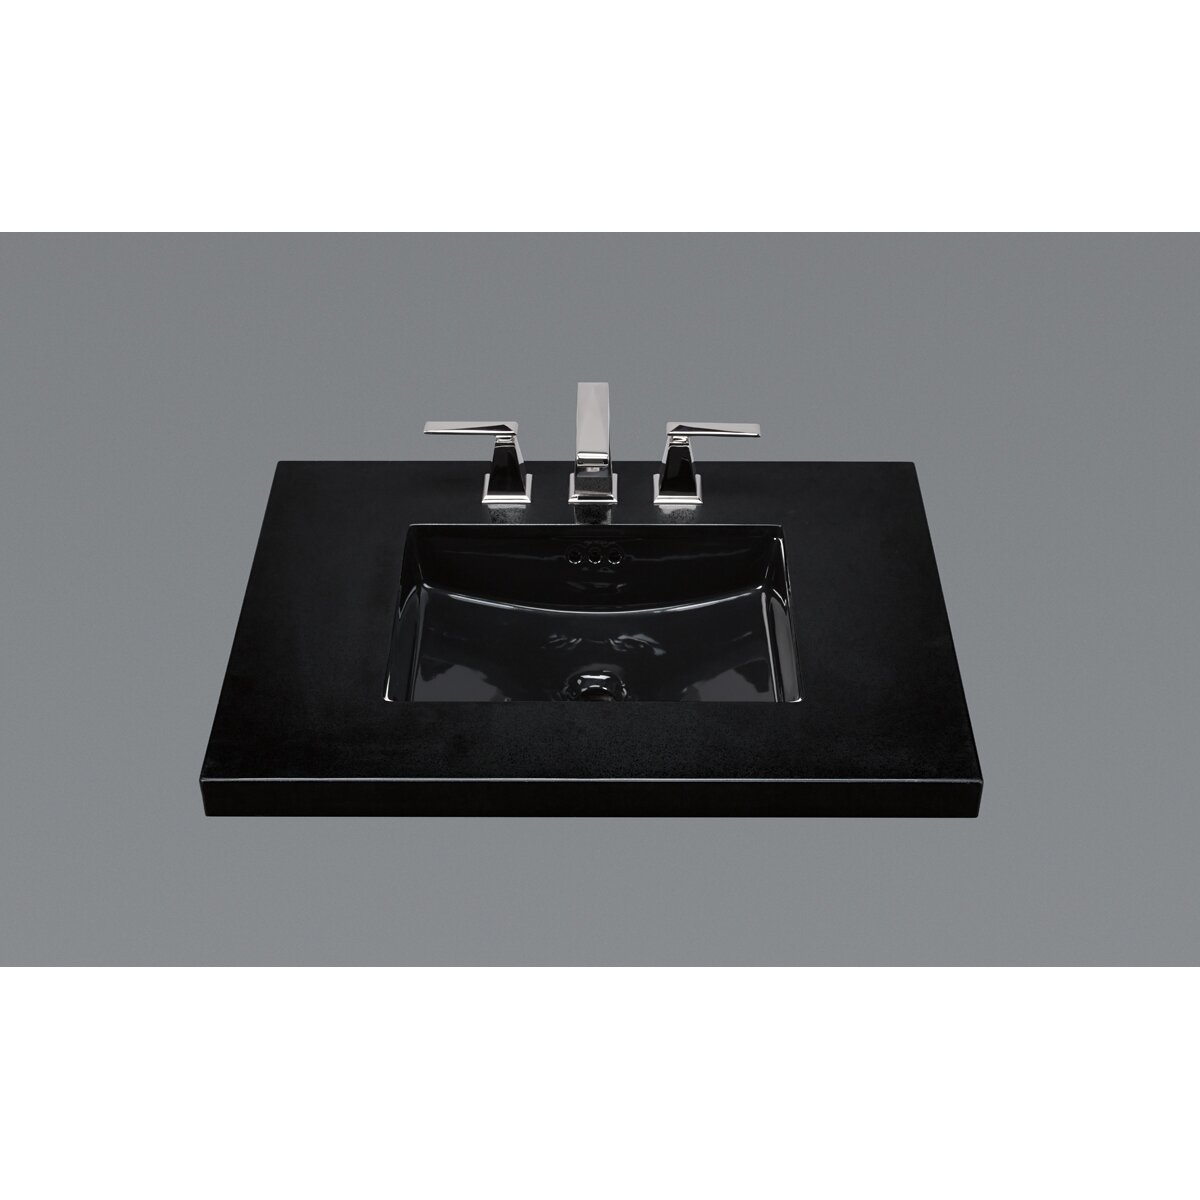 Black Bathroom Sink : Ceramic Undermount Bathroom Sink in Black Wayfair